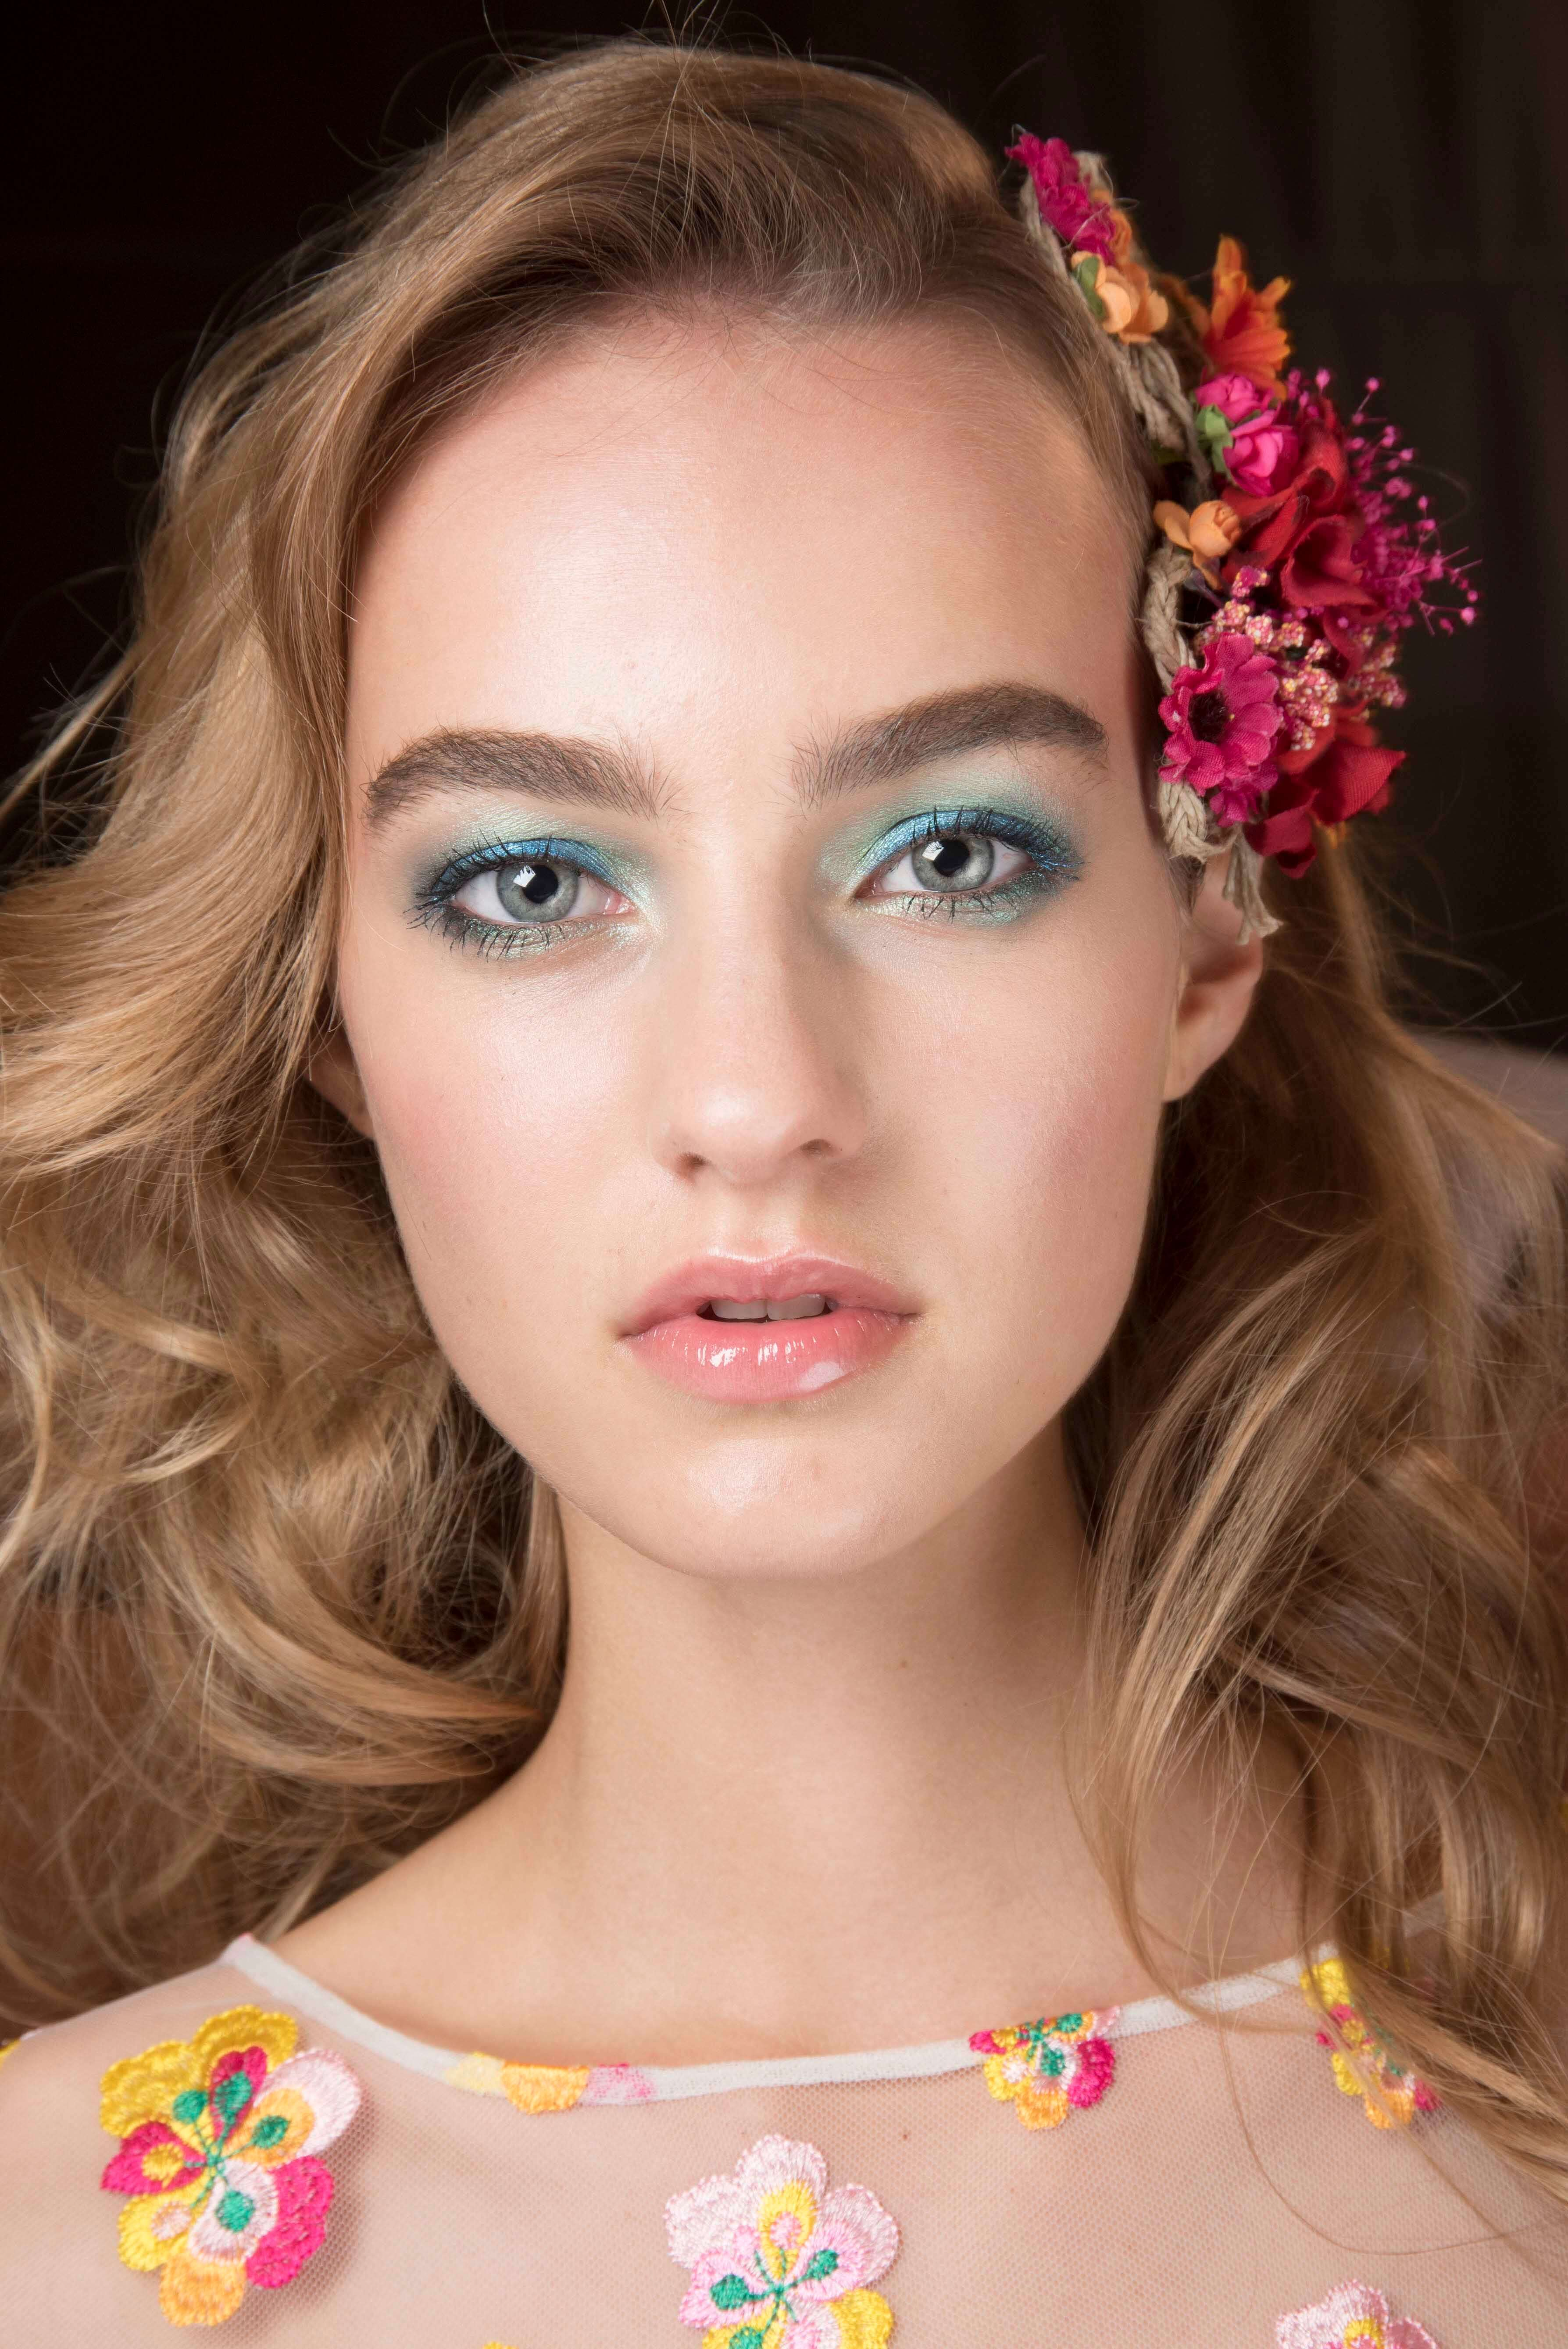 Curly prom hairstyles: Voluminous curls hairstyle accessorised with pink flowers.